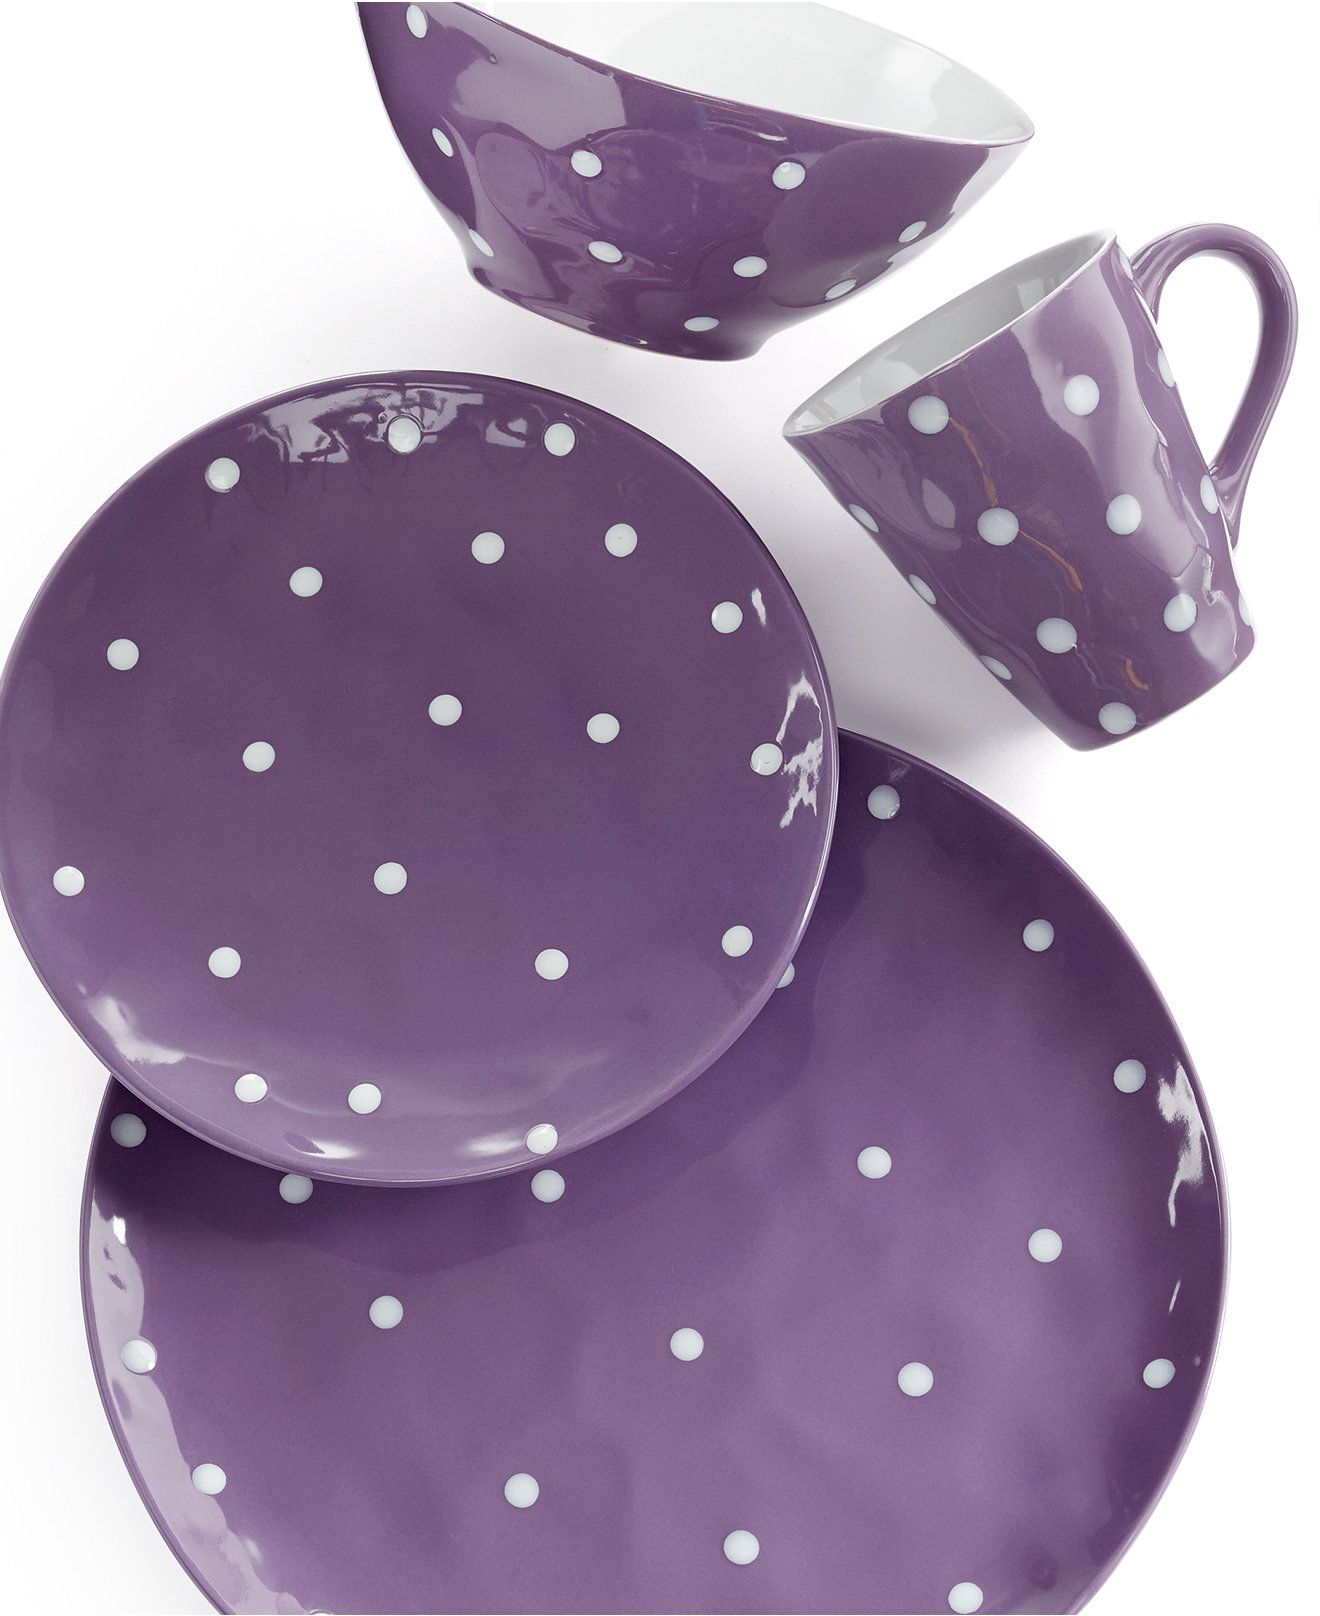 Maxwell \u0026 Williams Sprinkle Purple 4-Piece Place Setting - Dinnerware - Dining \u0026 Entertaining  sc 1 st  Pinterest & Maxwell \u0026 Williams Sprinkle Purple 4-Piece Place Setting ...